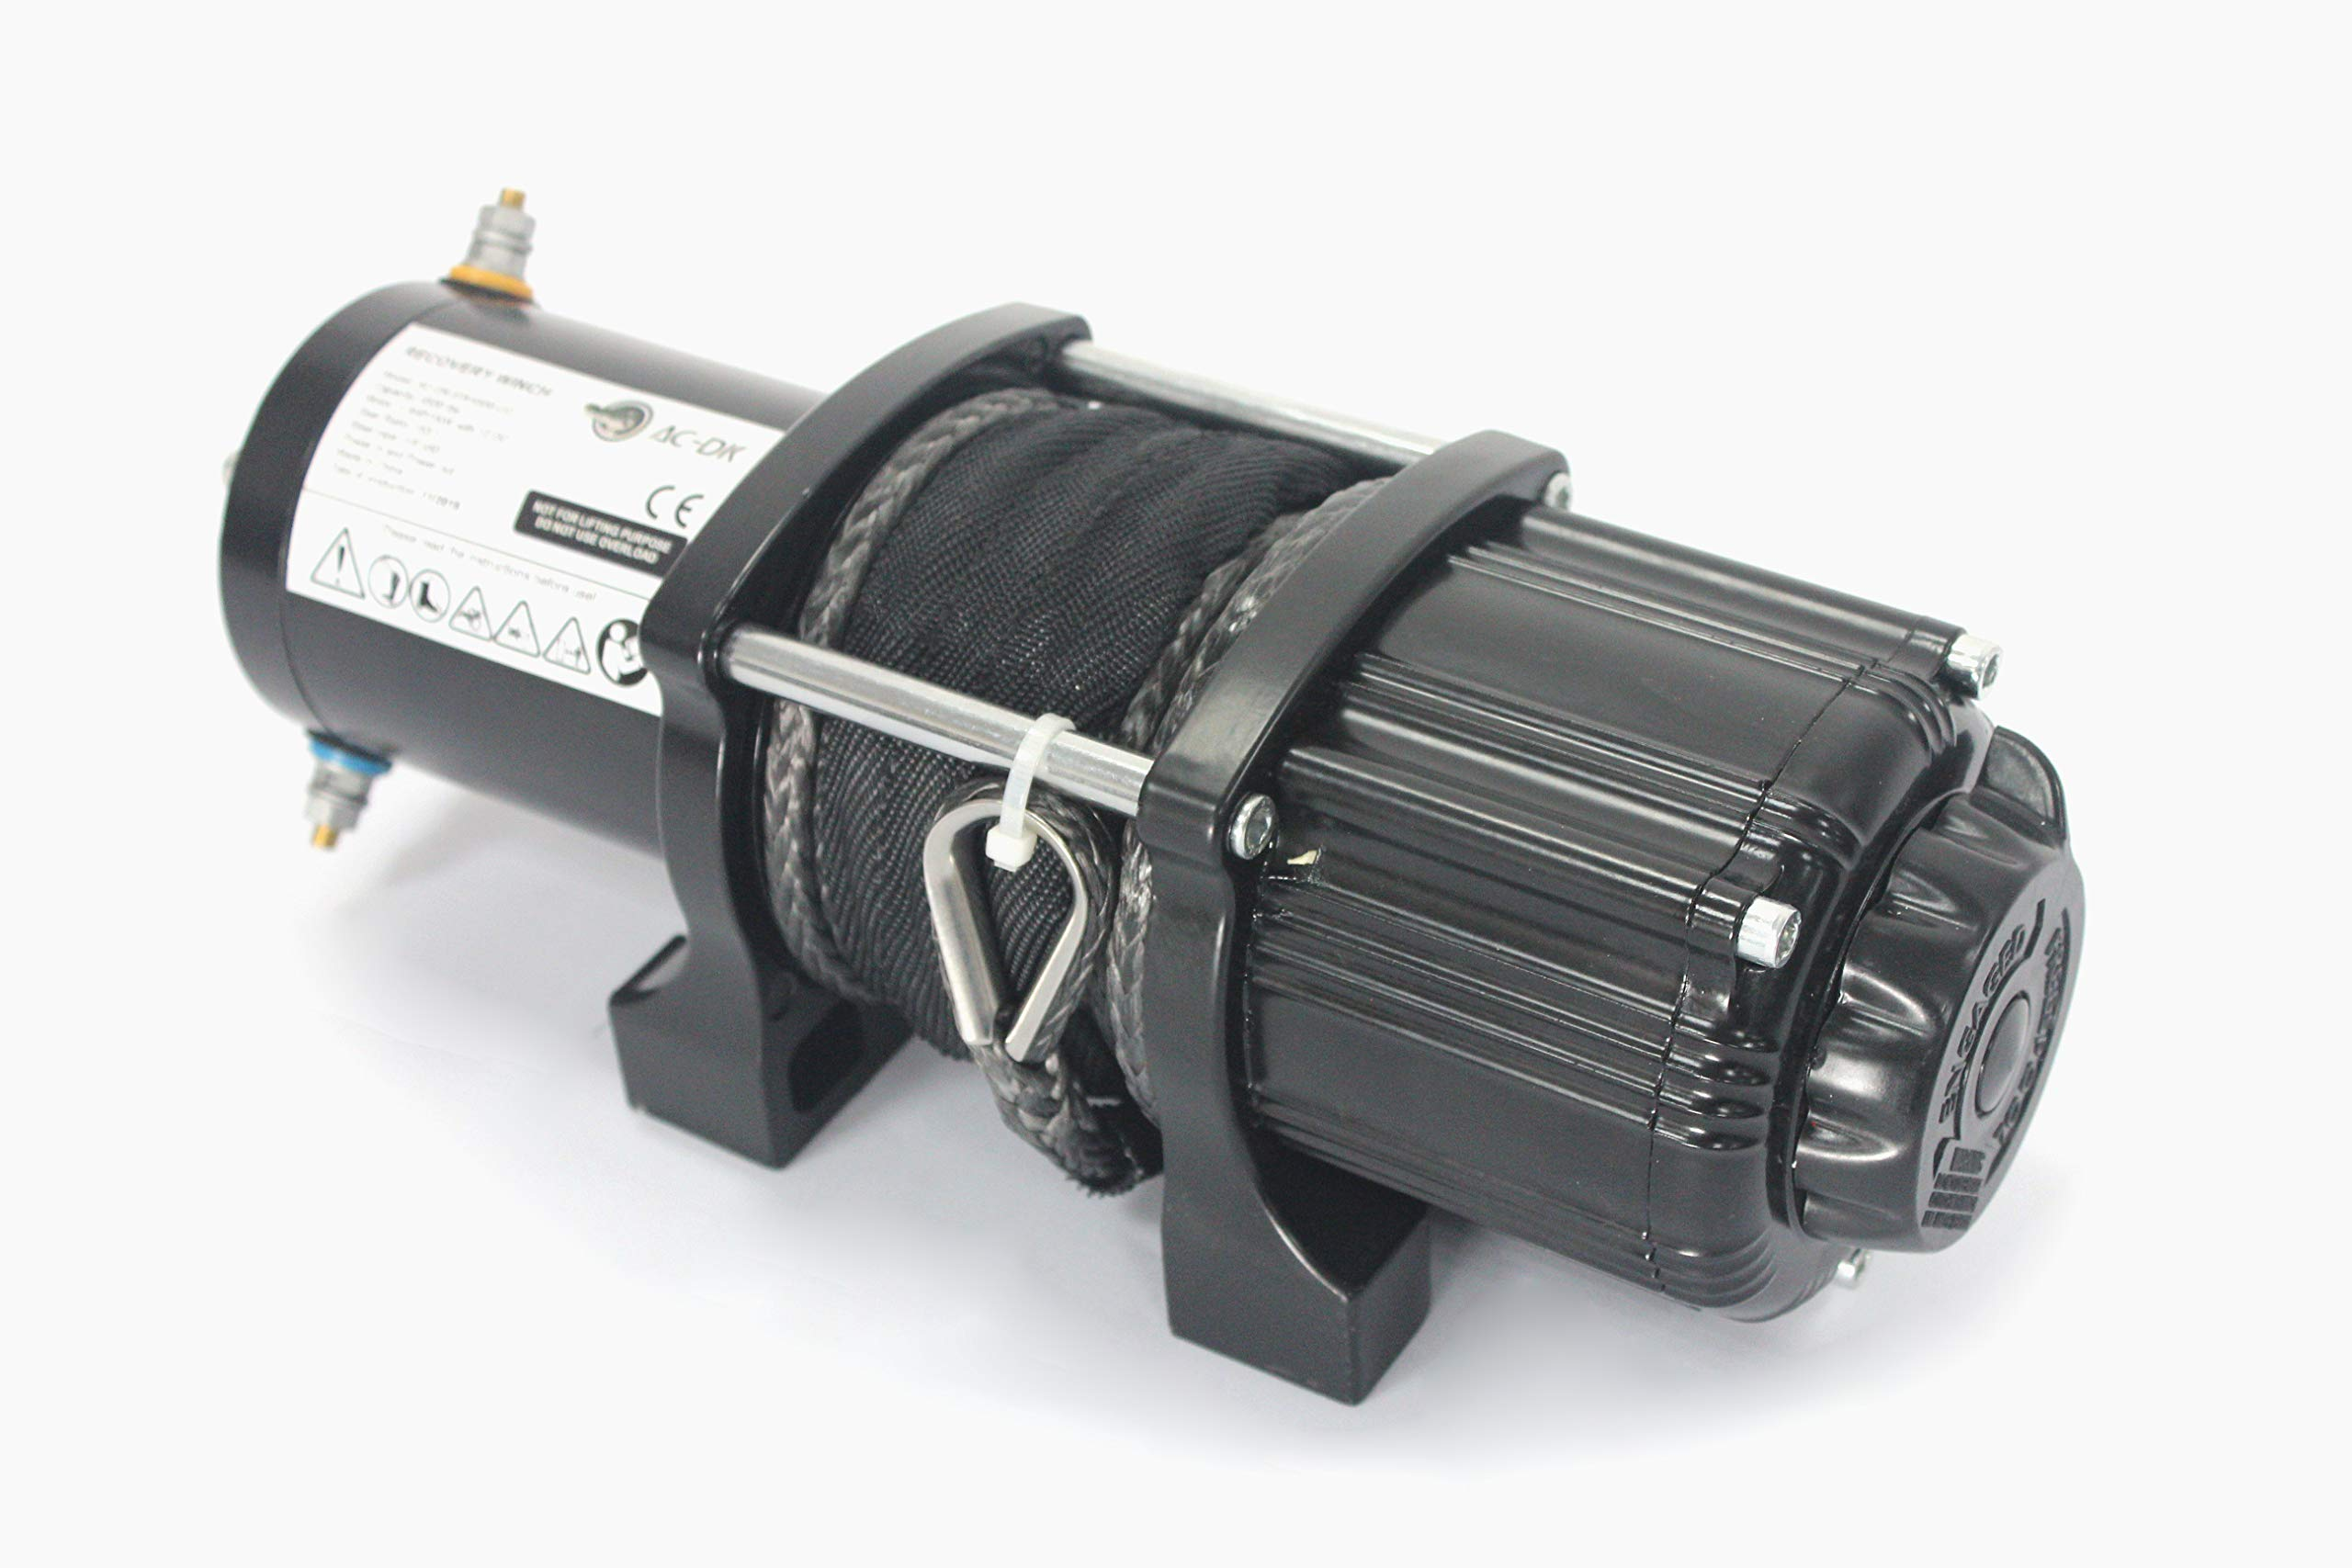 AC-DK 12V 4500lb ATV Winch UTV Winch Electric Winch Set for 4x4 Off Road (4500lb Winch with Synthetic Rope) by AC-DK (Image #5)